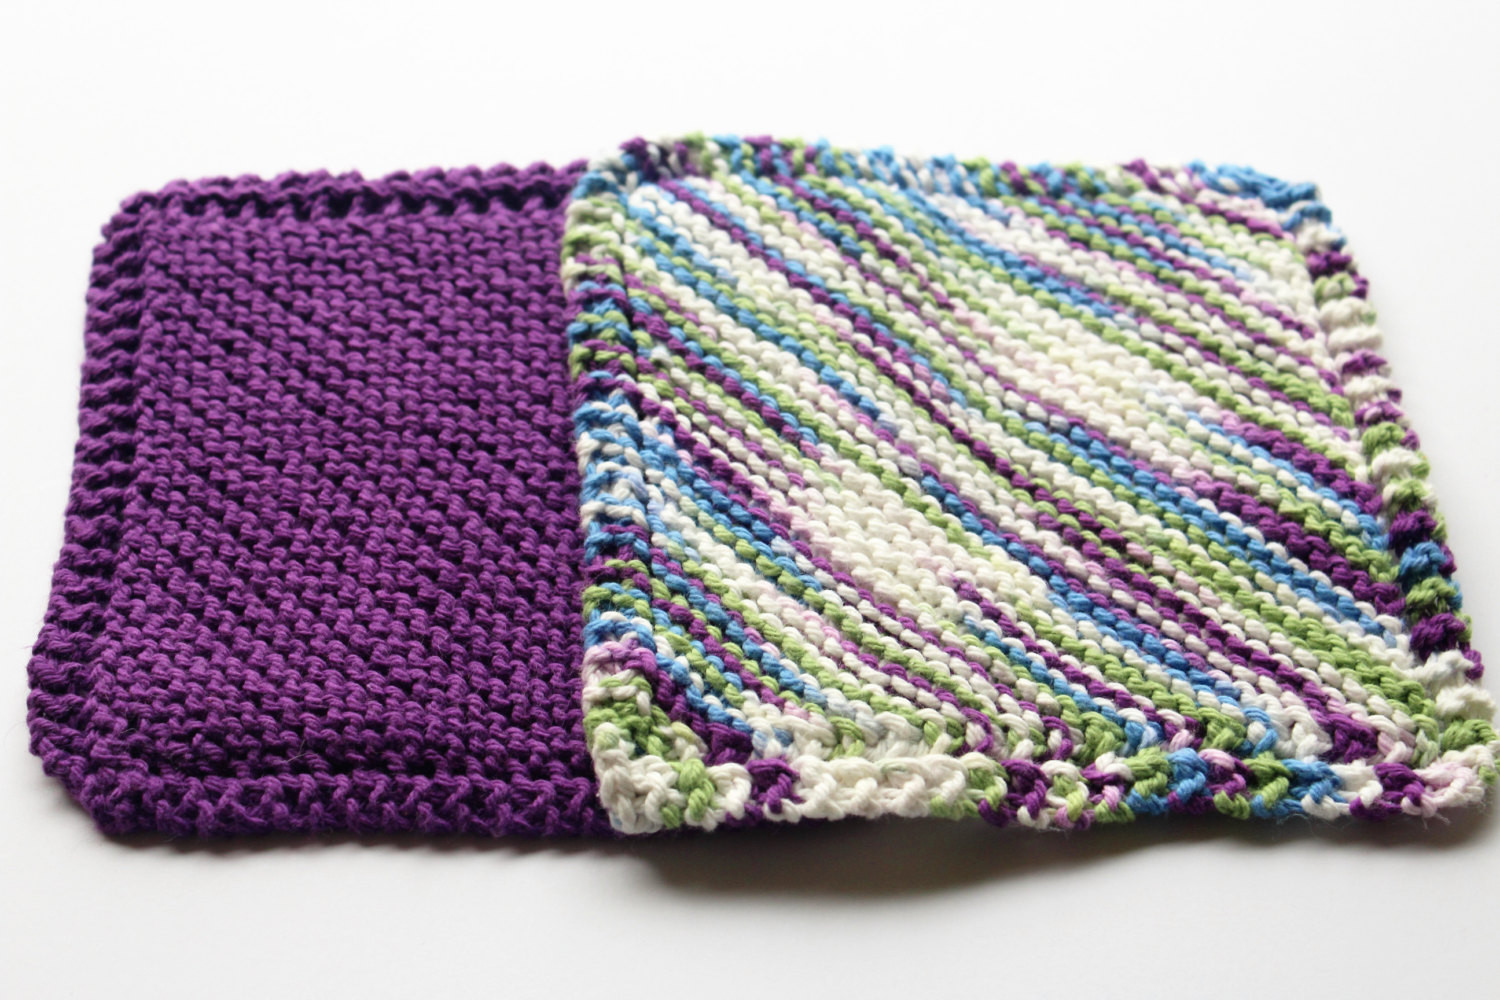 Lovely Knit Dish Cloths Hand Knit Dishcloth Set Of 2 Dishcloths Knitted Dish Rags Of New 45 Ideas Knitted Dish Rags